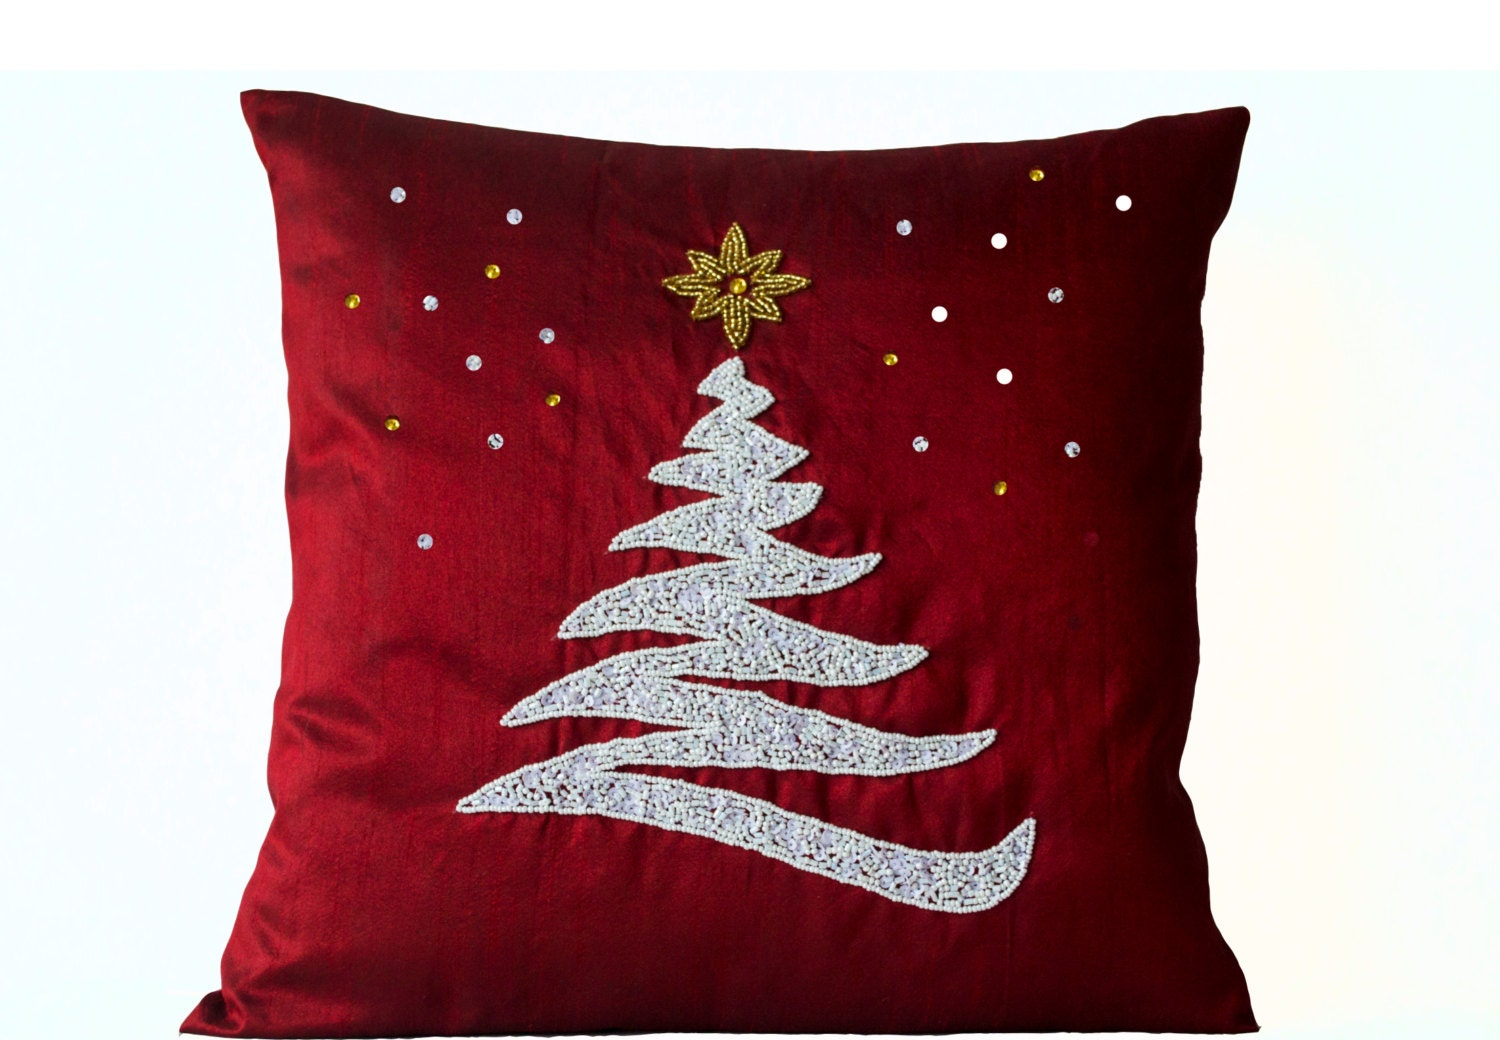 Decorative Pillows For Christmas